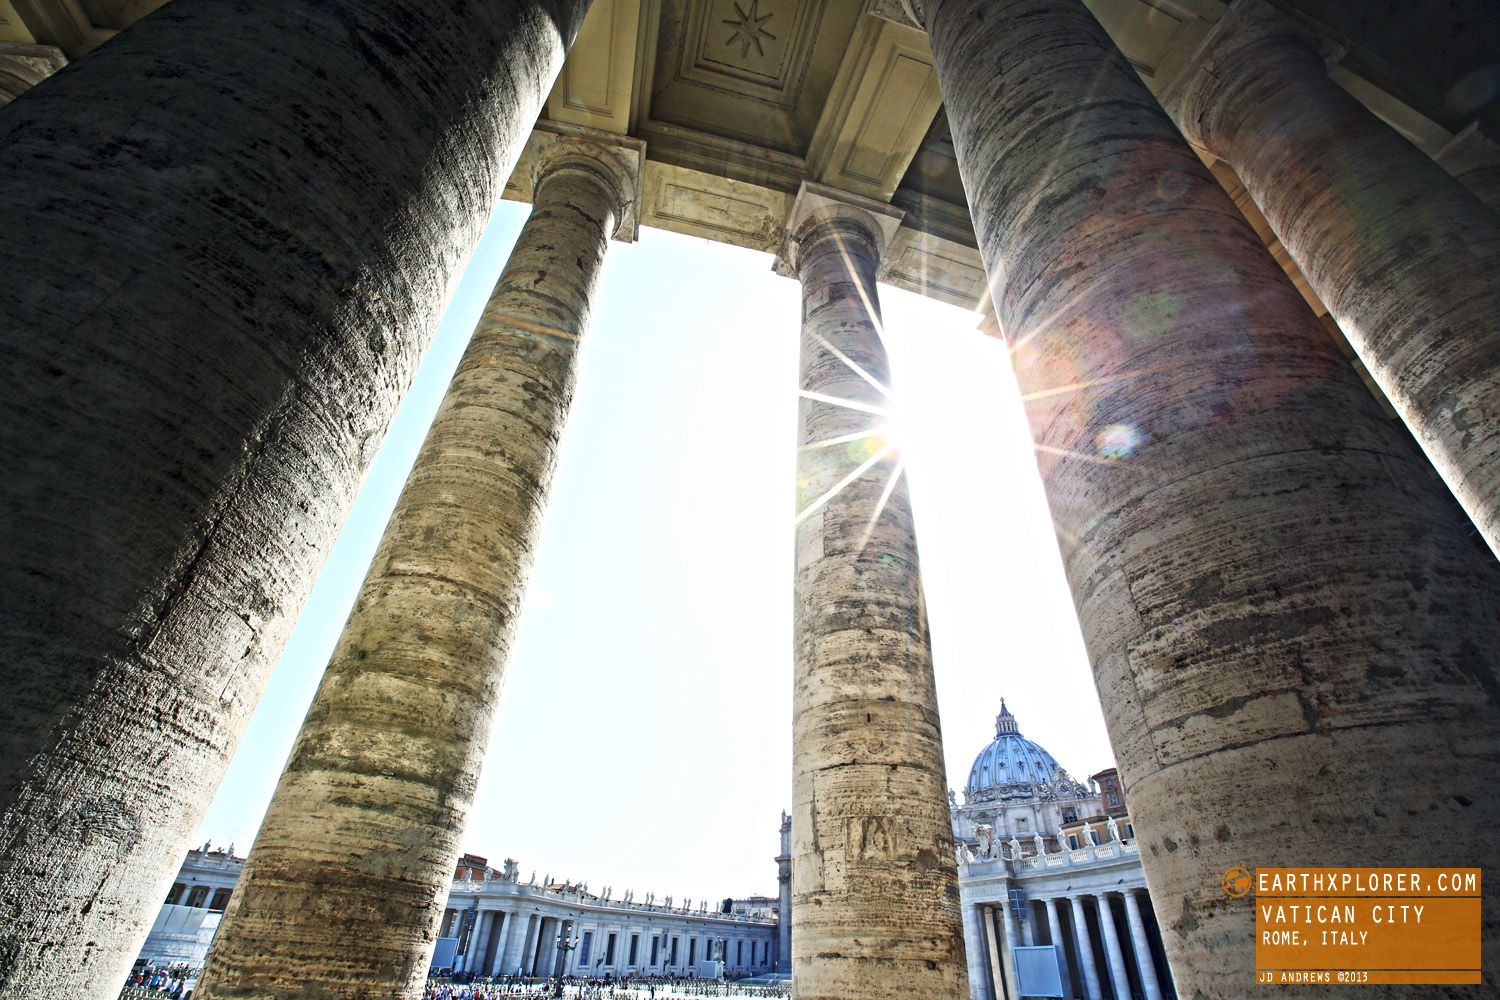 Vatican City is the smallest internationally recognized independent state in the world by both area and population.